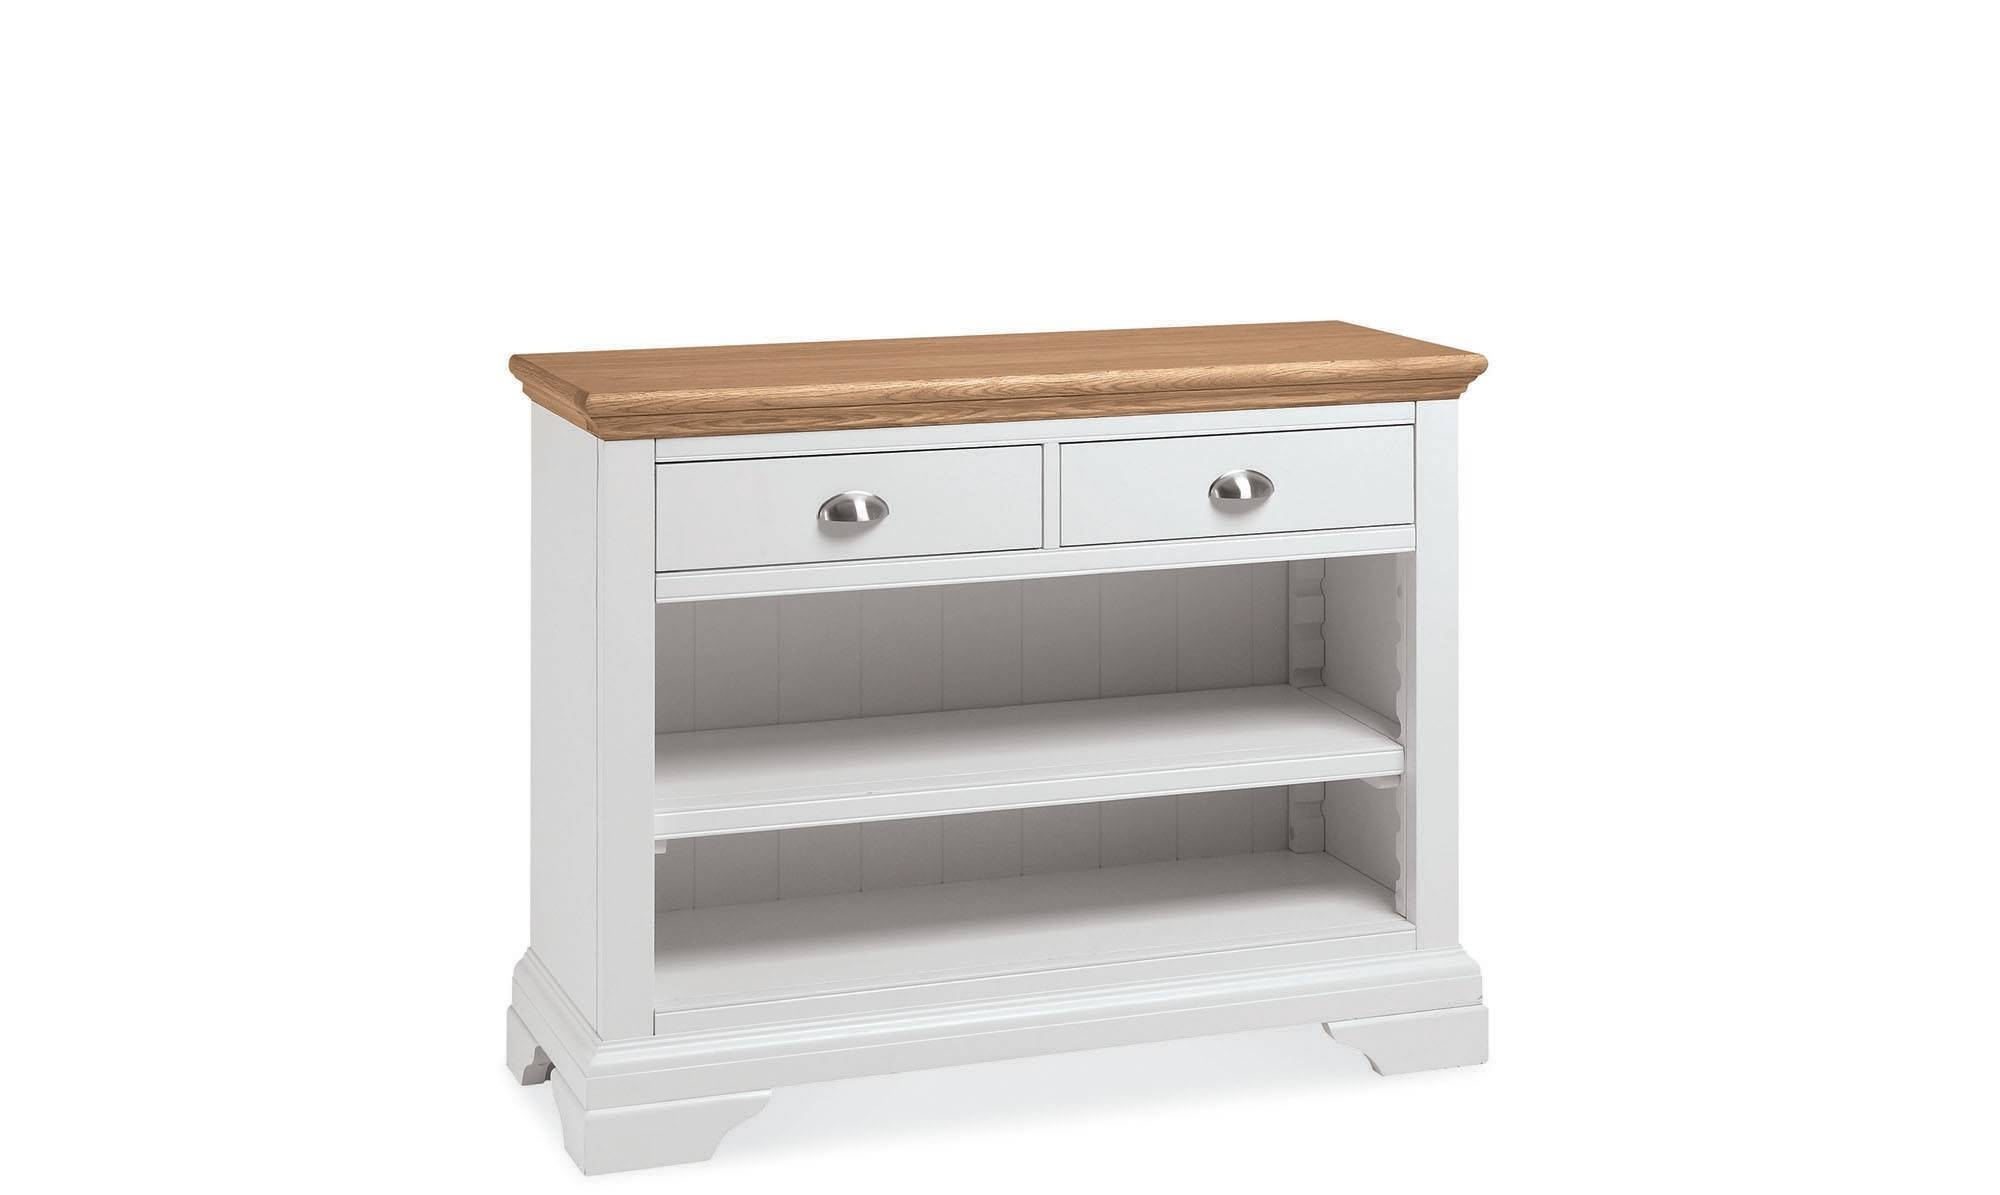 Georgie - Natural Oak Console Table - Cream - Fishpools regarding Cream and Oak Sideboards (Image 8 of 15)